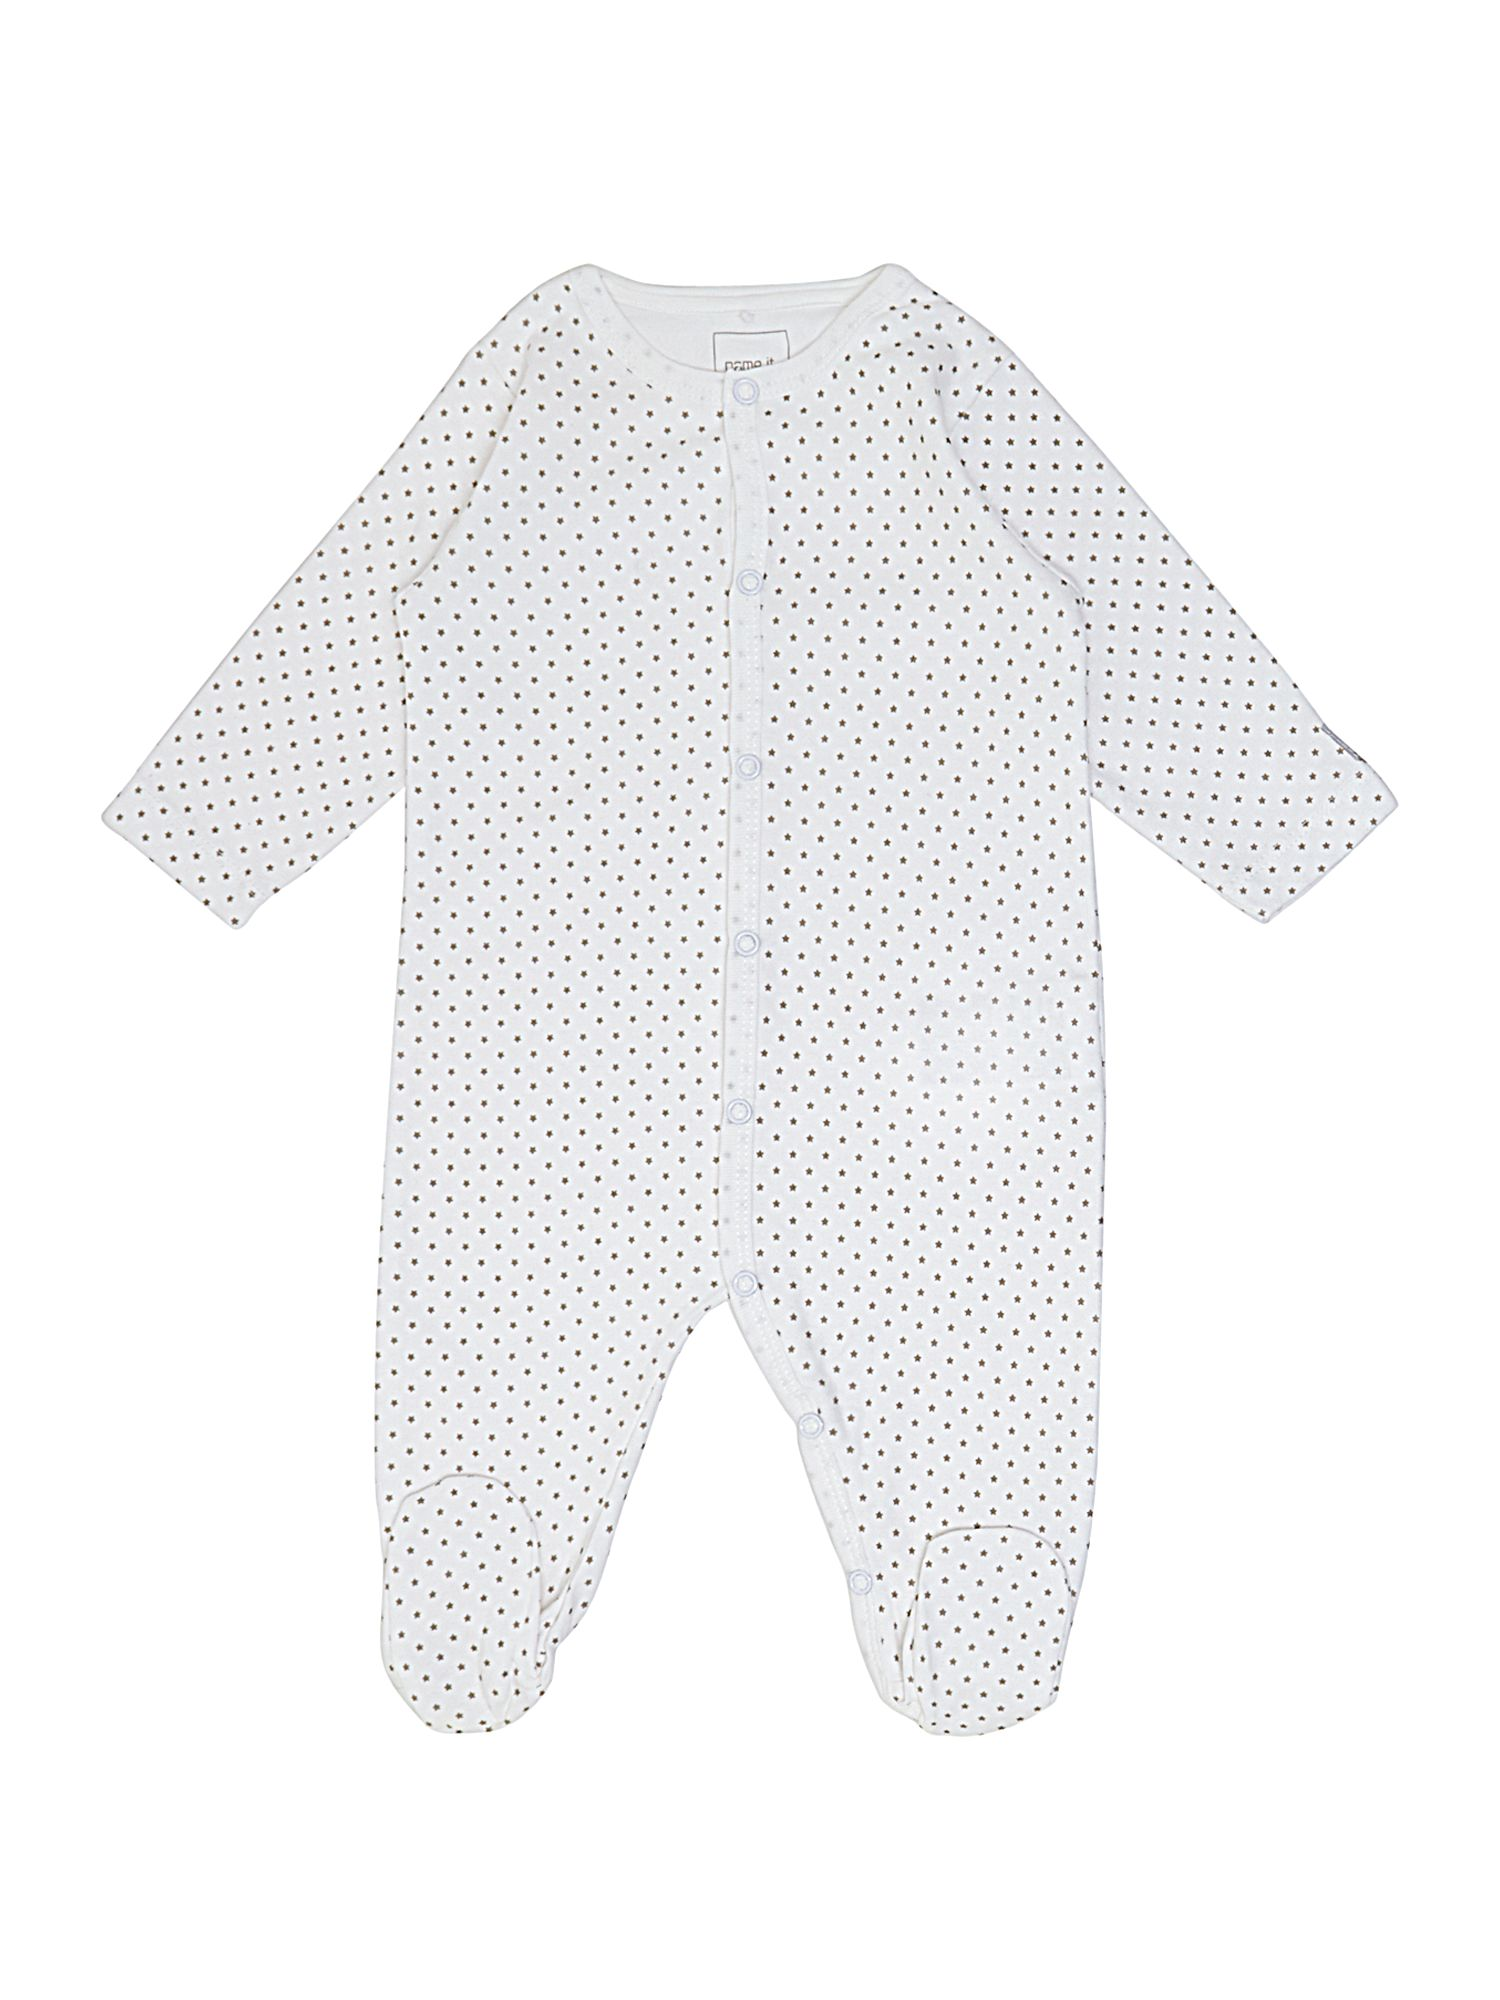 Babys star print sleepsuit with feet